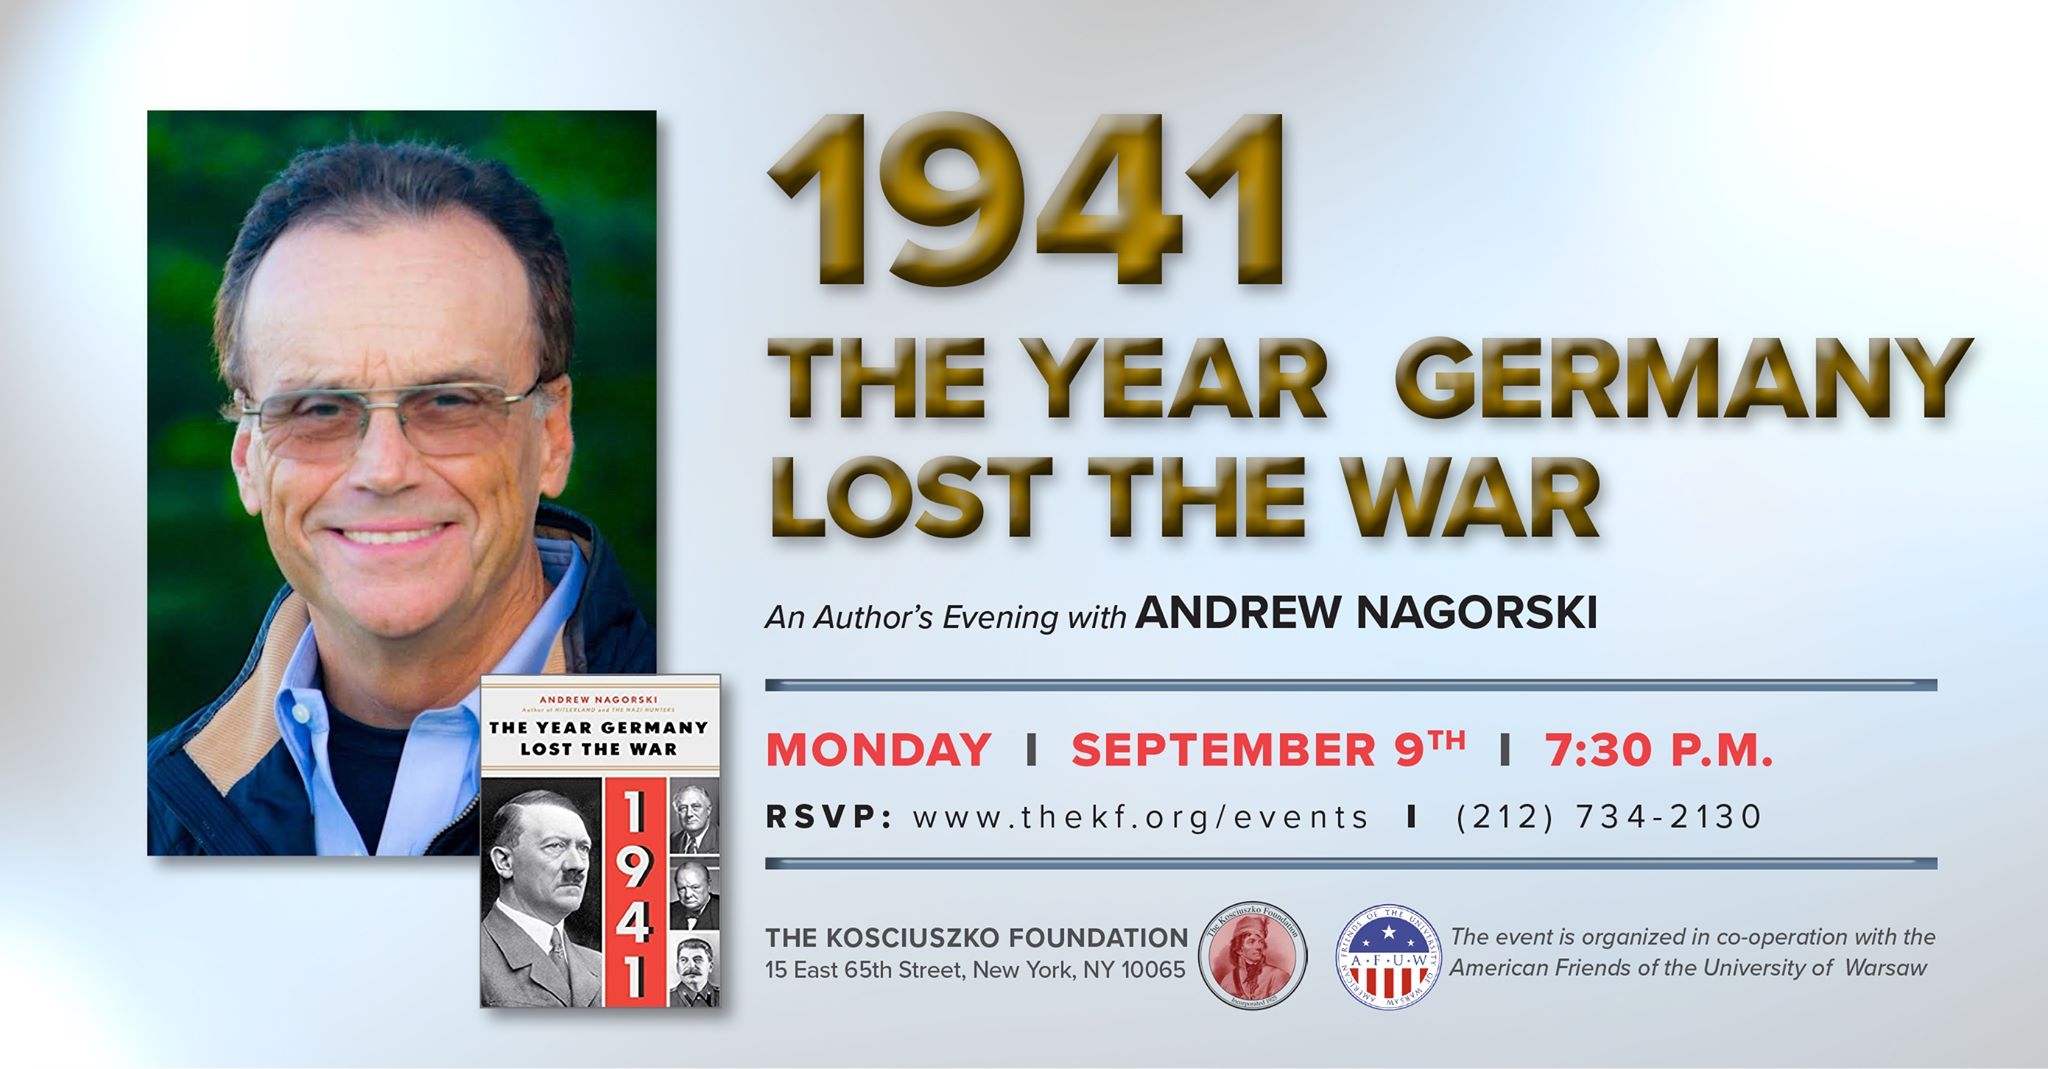 """Andrew Nagorski and Book """"1941: The Year Germany Lost the War"""" in NYC"""